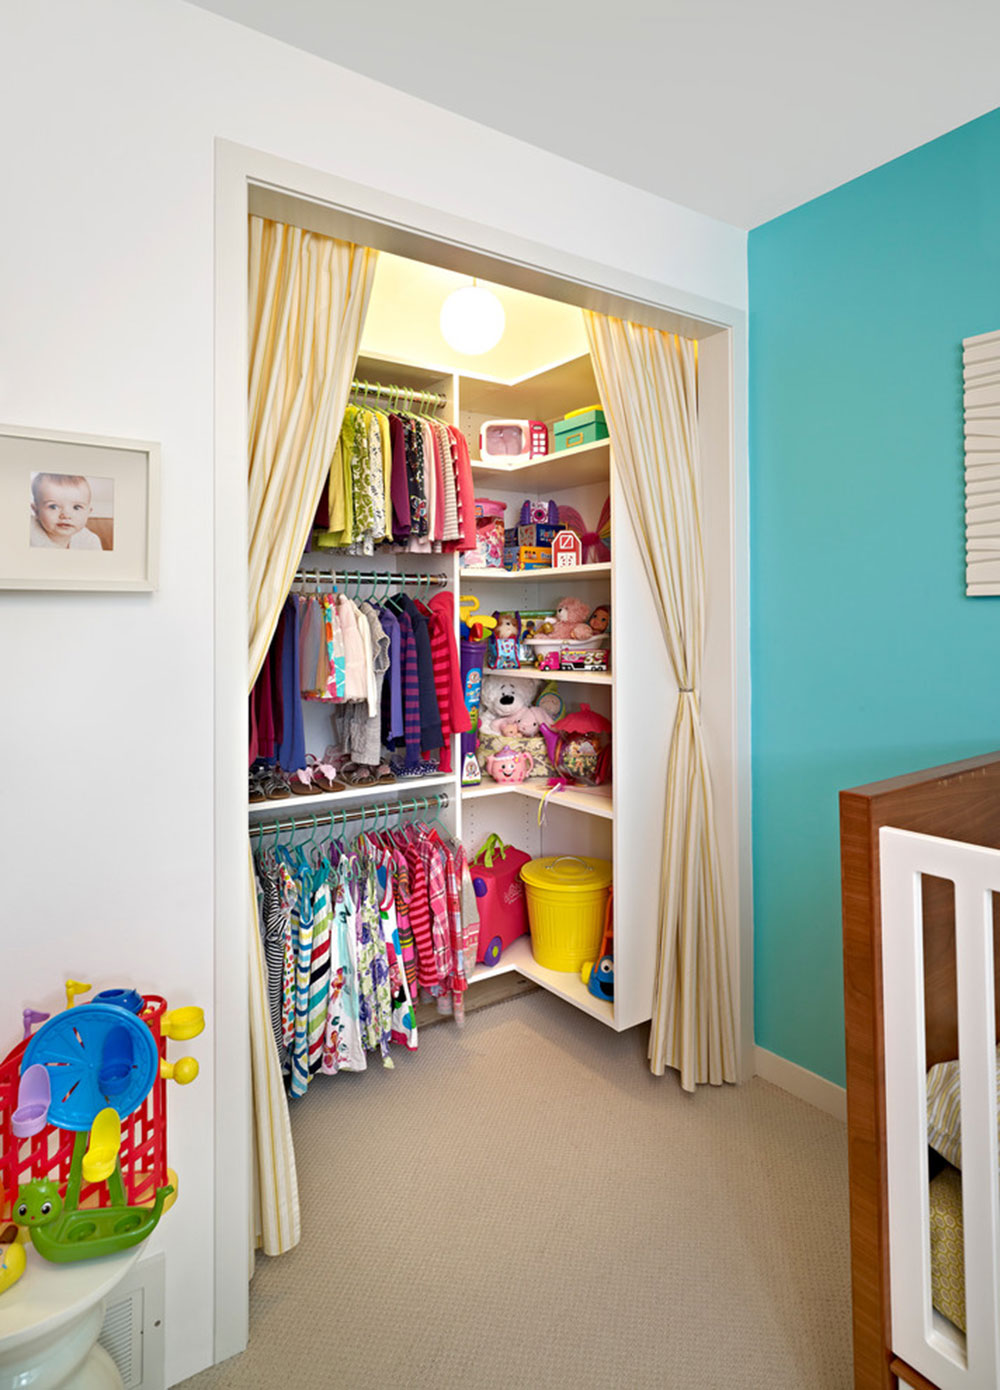 How To Cover A Closet Without Doors Inexpensive Options